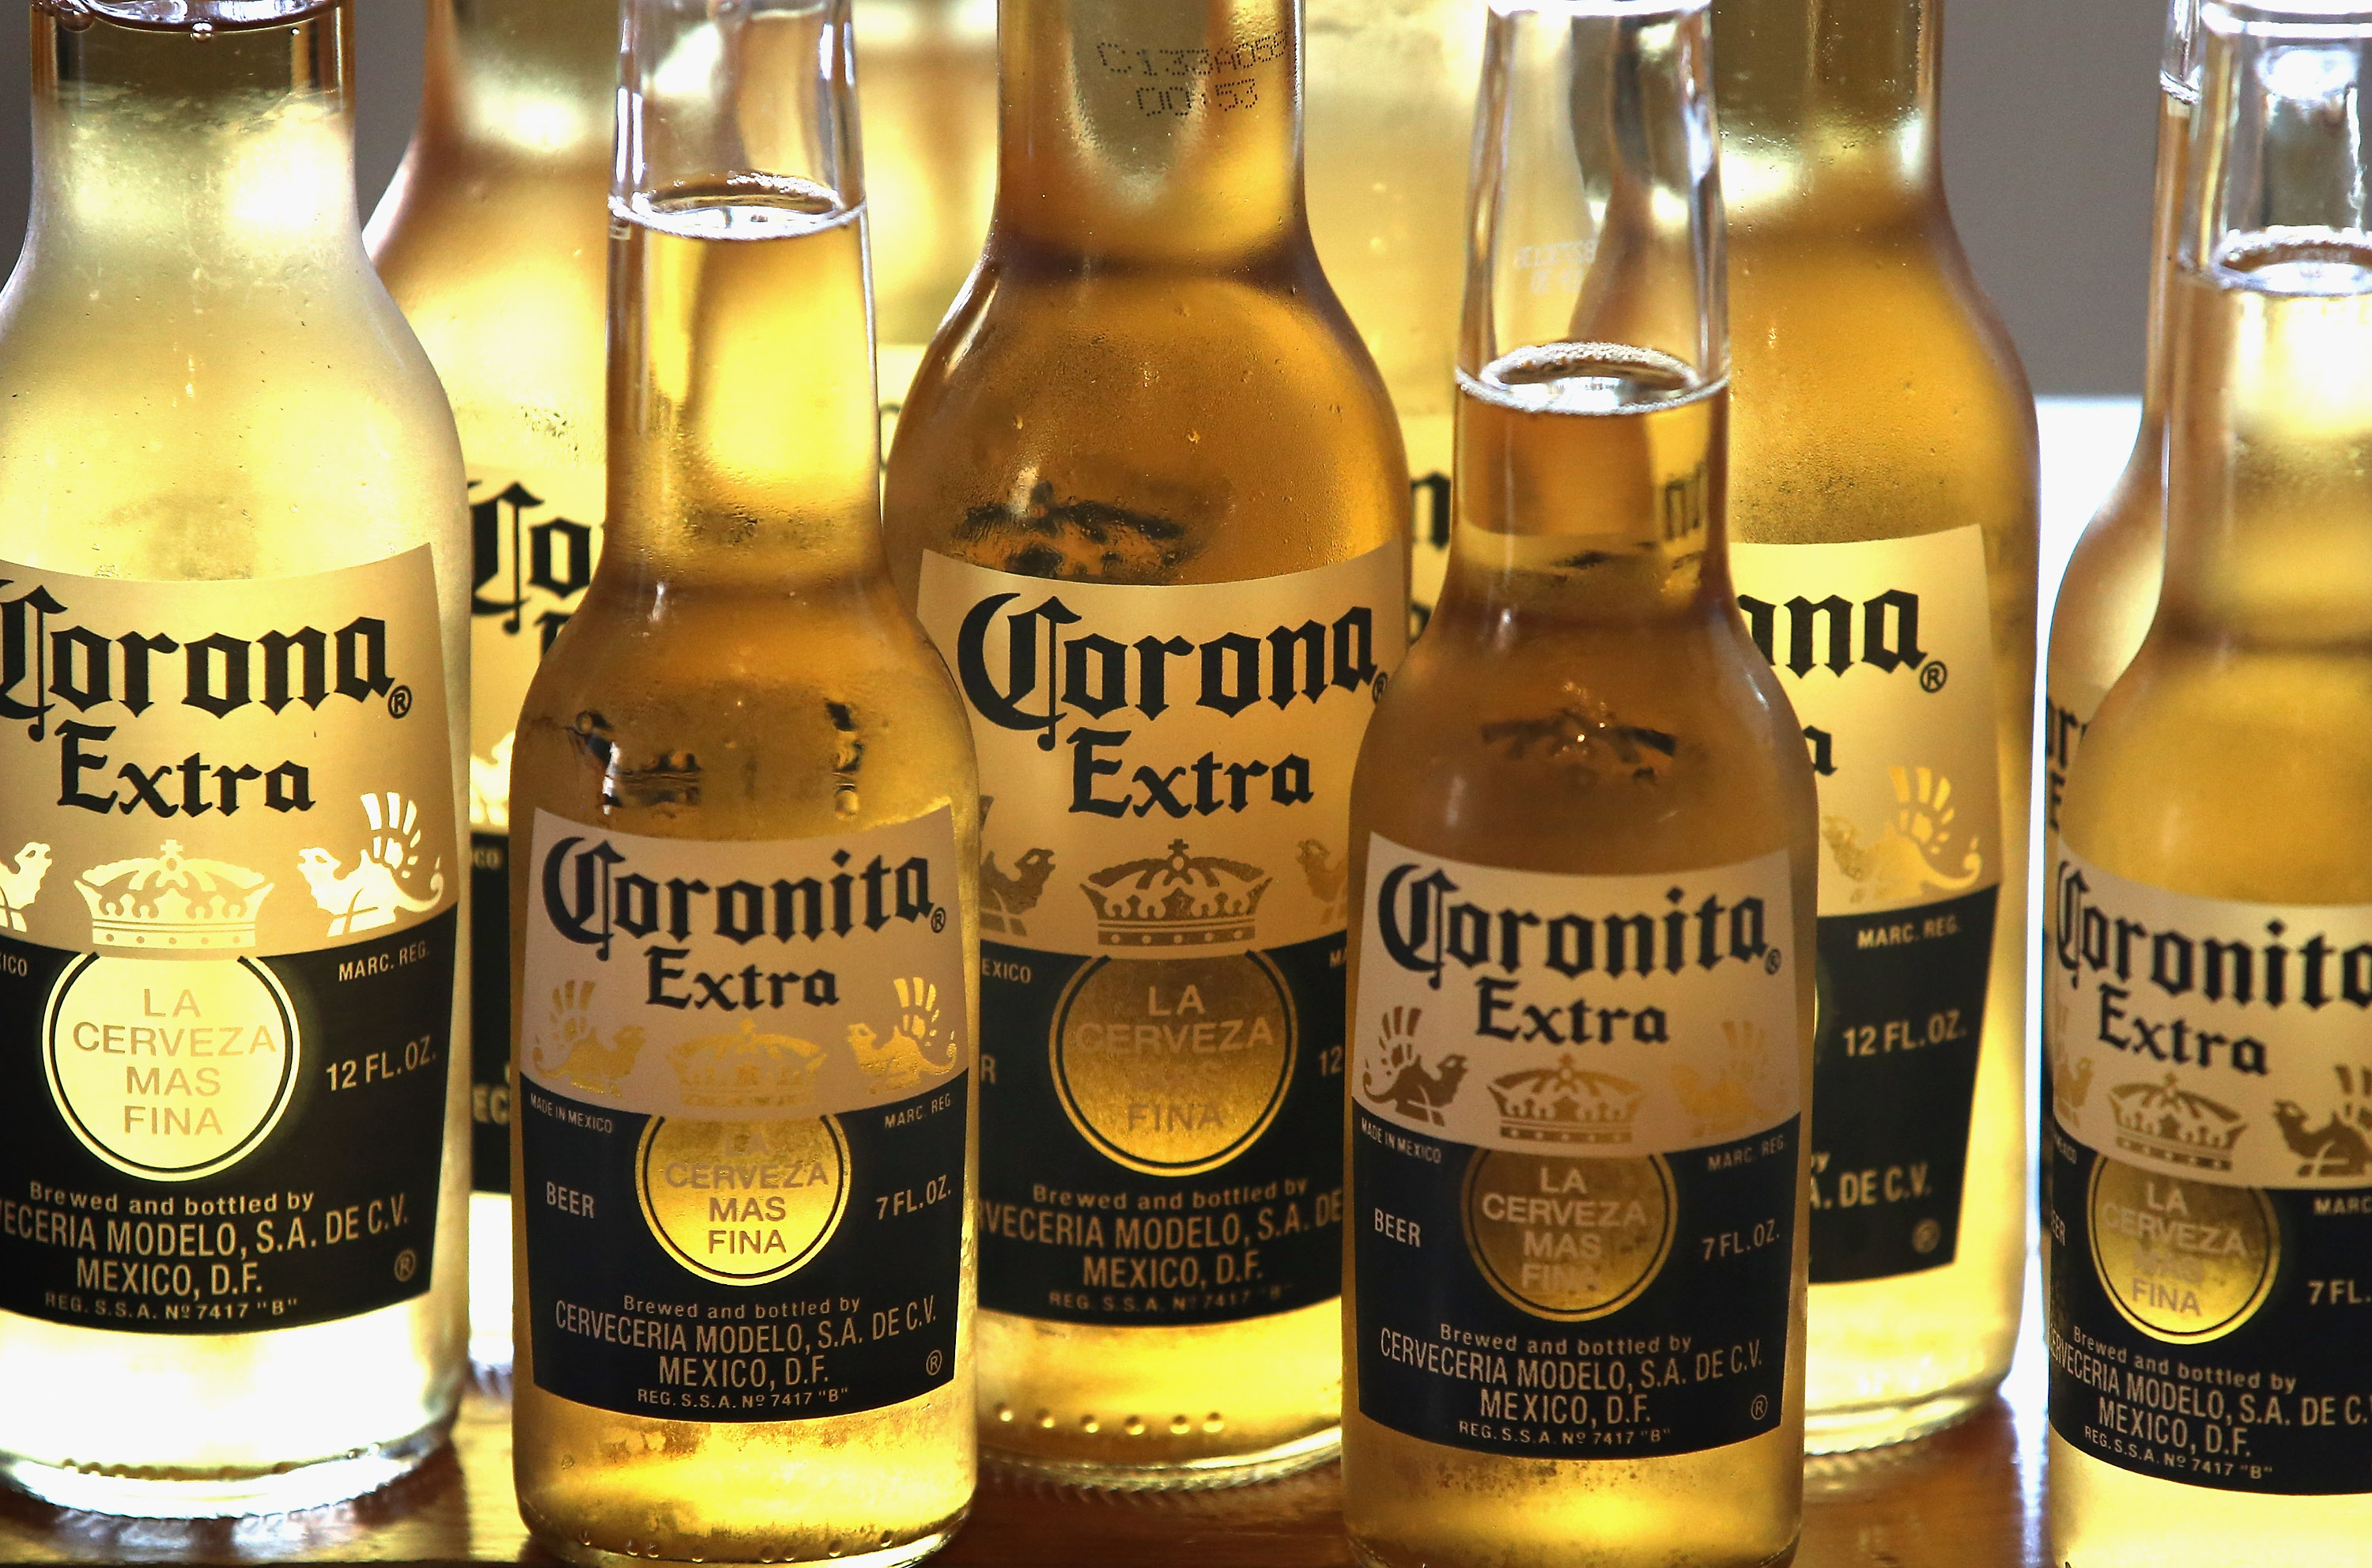 Corona Beer Bottle Recall Full List Of Products Affected